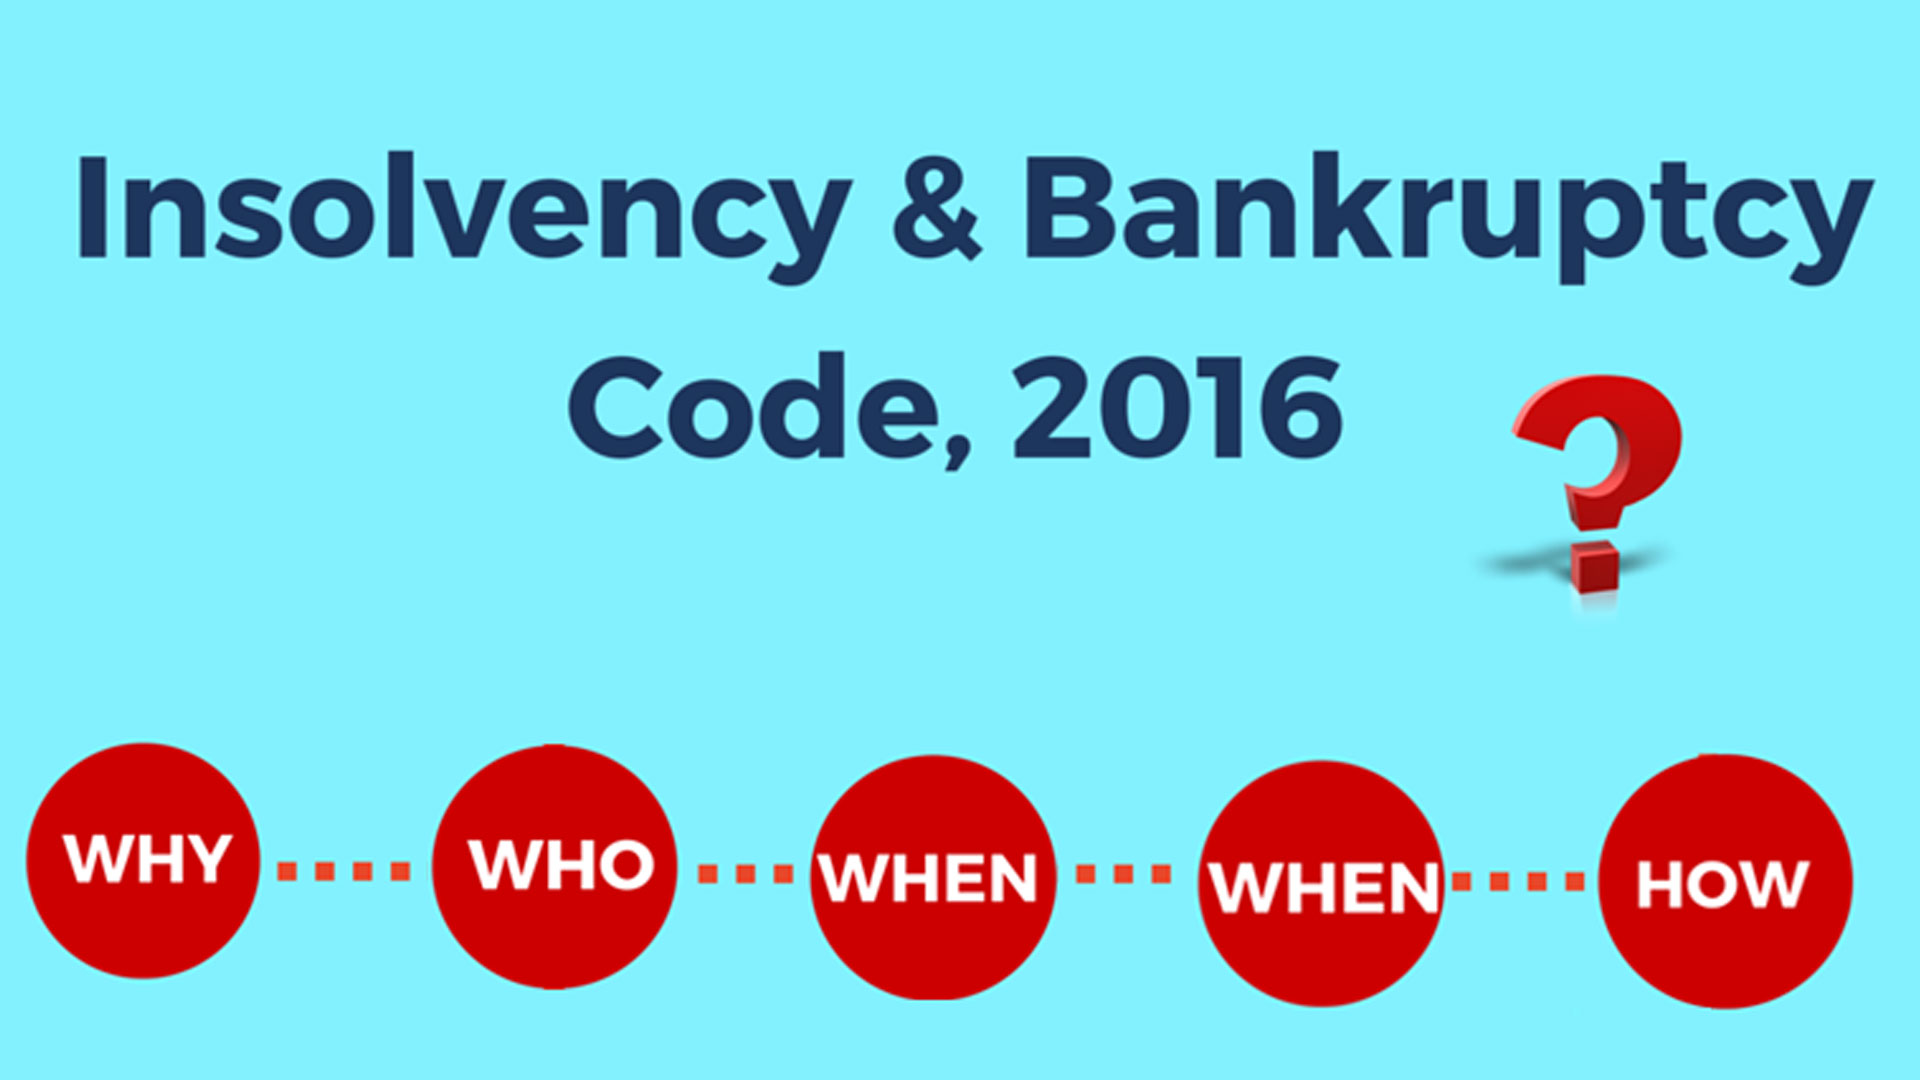 SEMINAR ON INSOLVENCY & BANKRUPTCY CODE